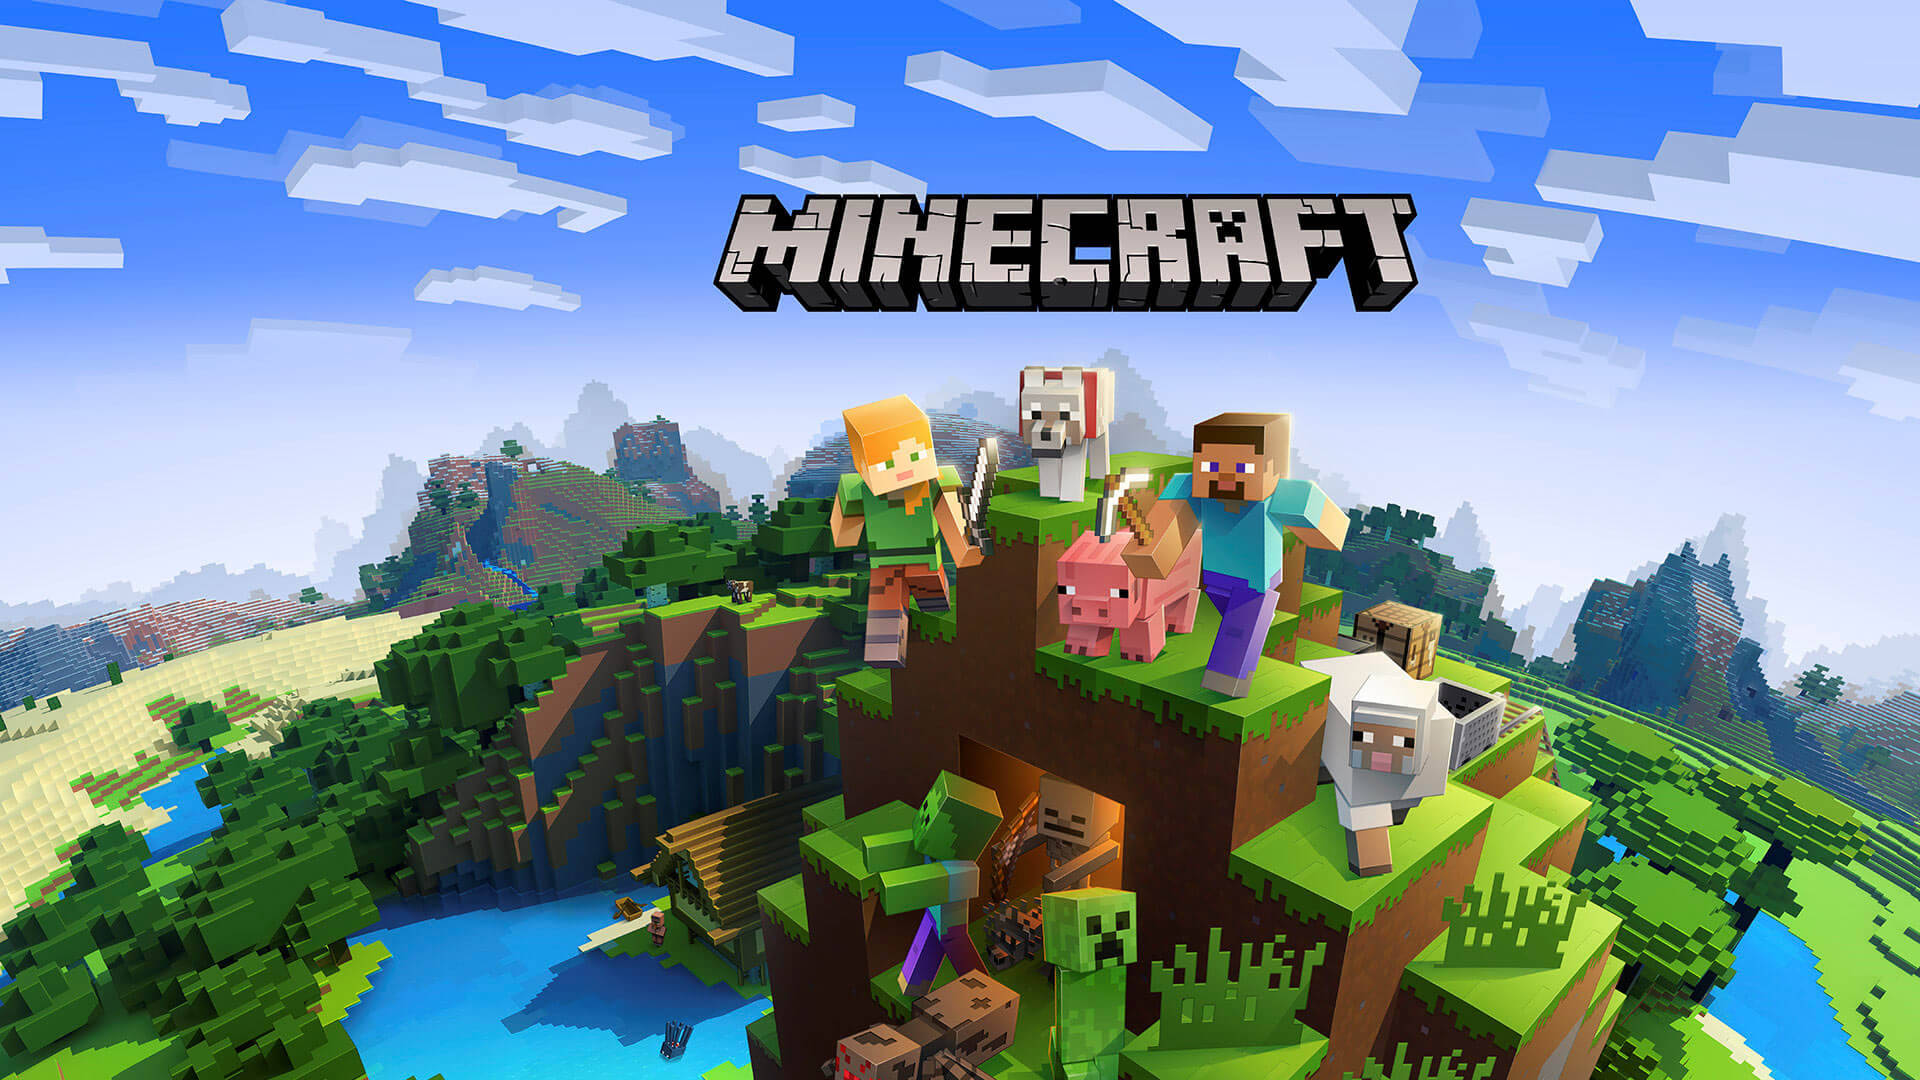 Minecraft sweet and awesome